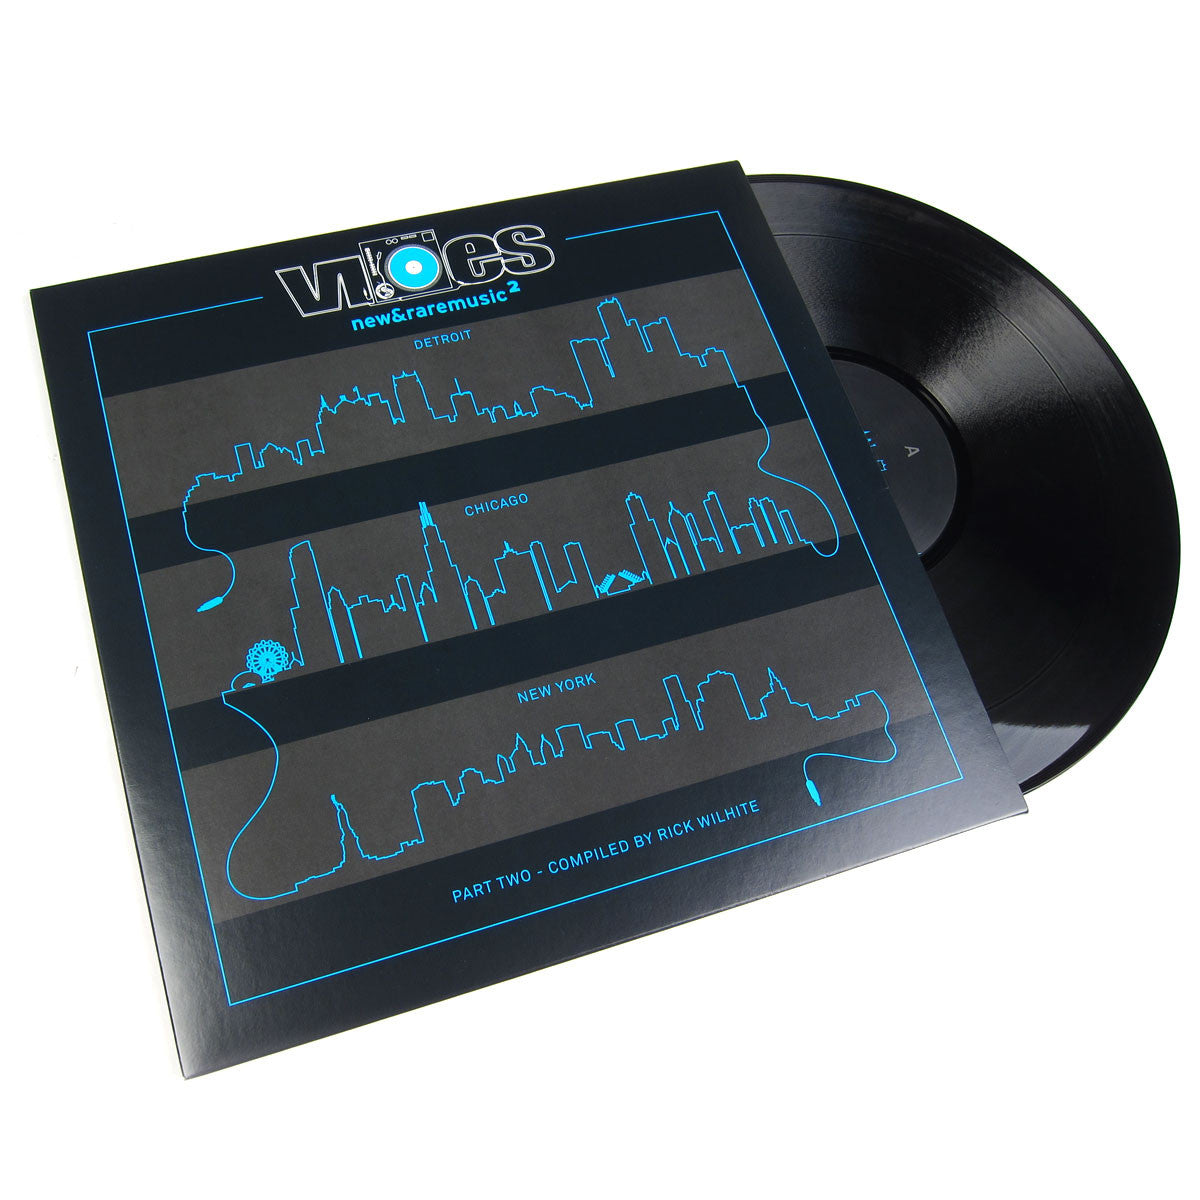 Rick Wilhite: Vibes 2 - Part Two (Moodymann, K-Alexi Shelby) Vinyl 2LP